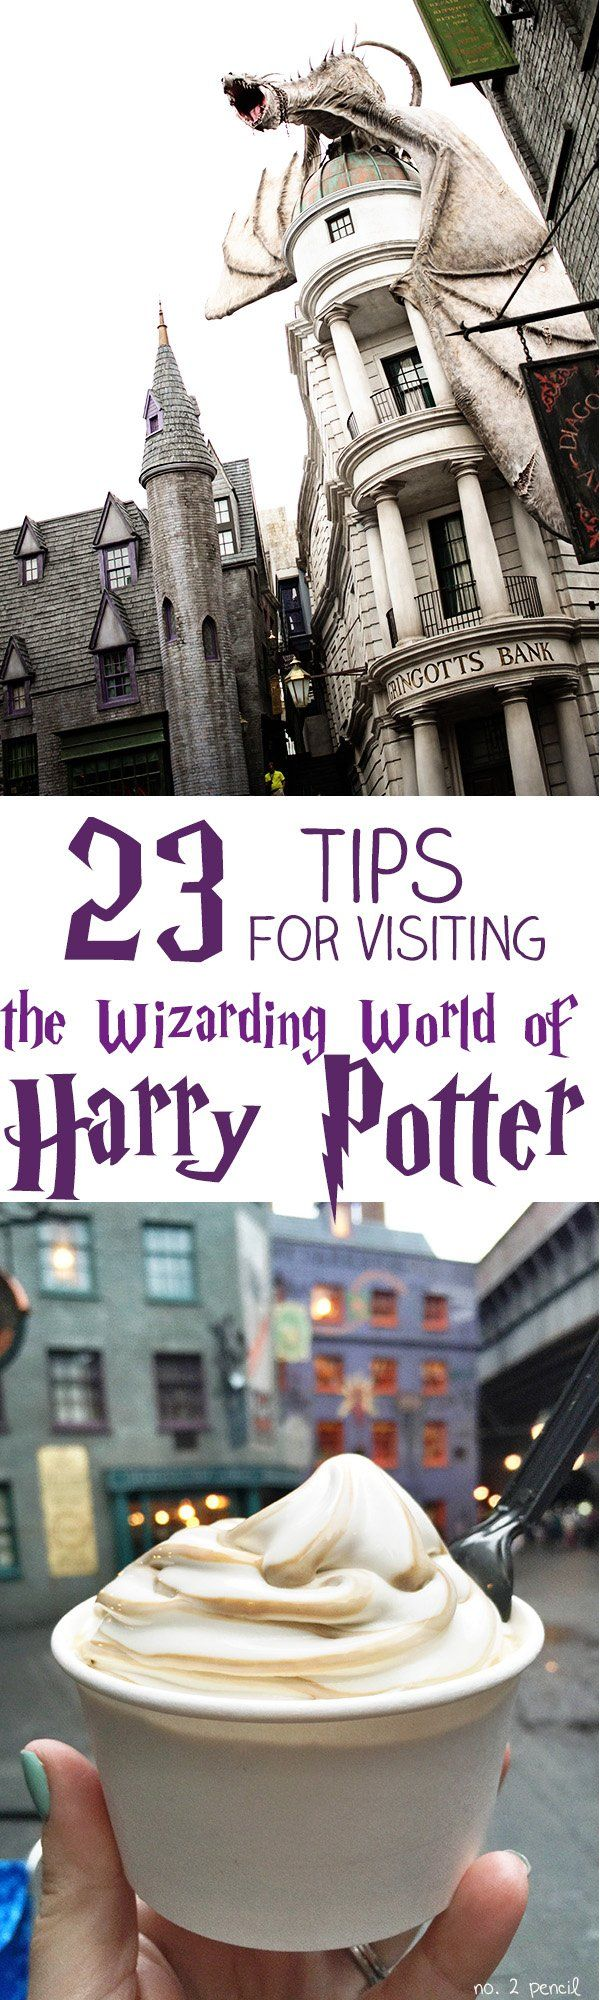 23 Tips for Visiting The Wizarding World of Harry Potter at Universal Orlando!